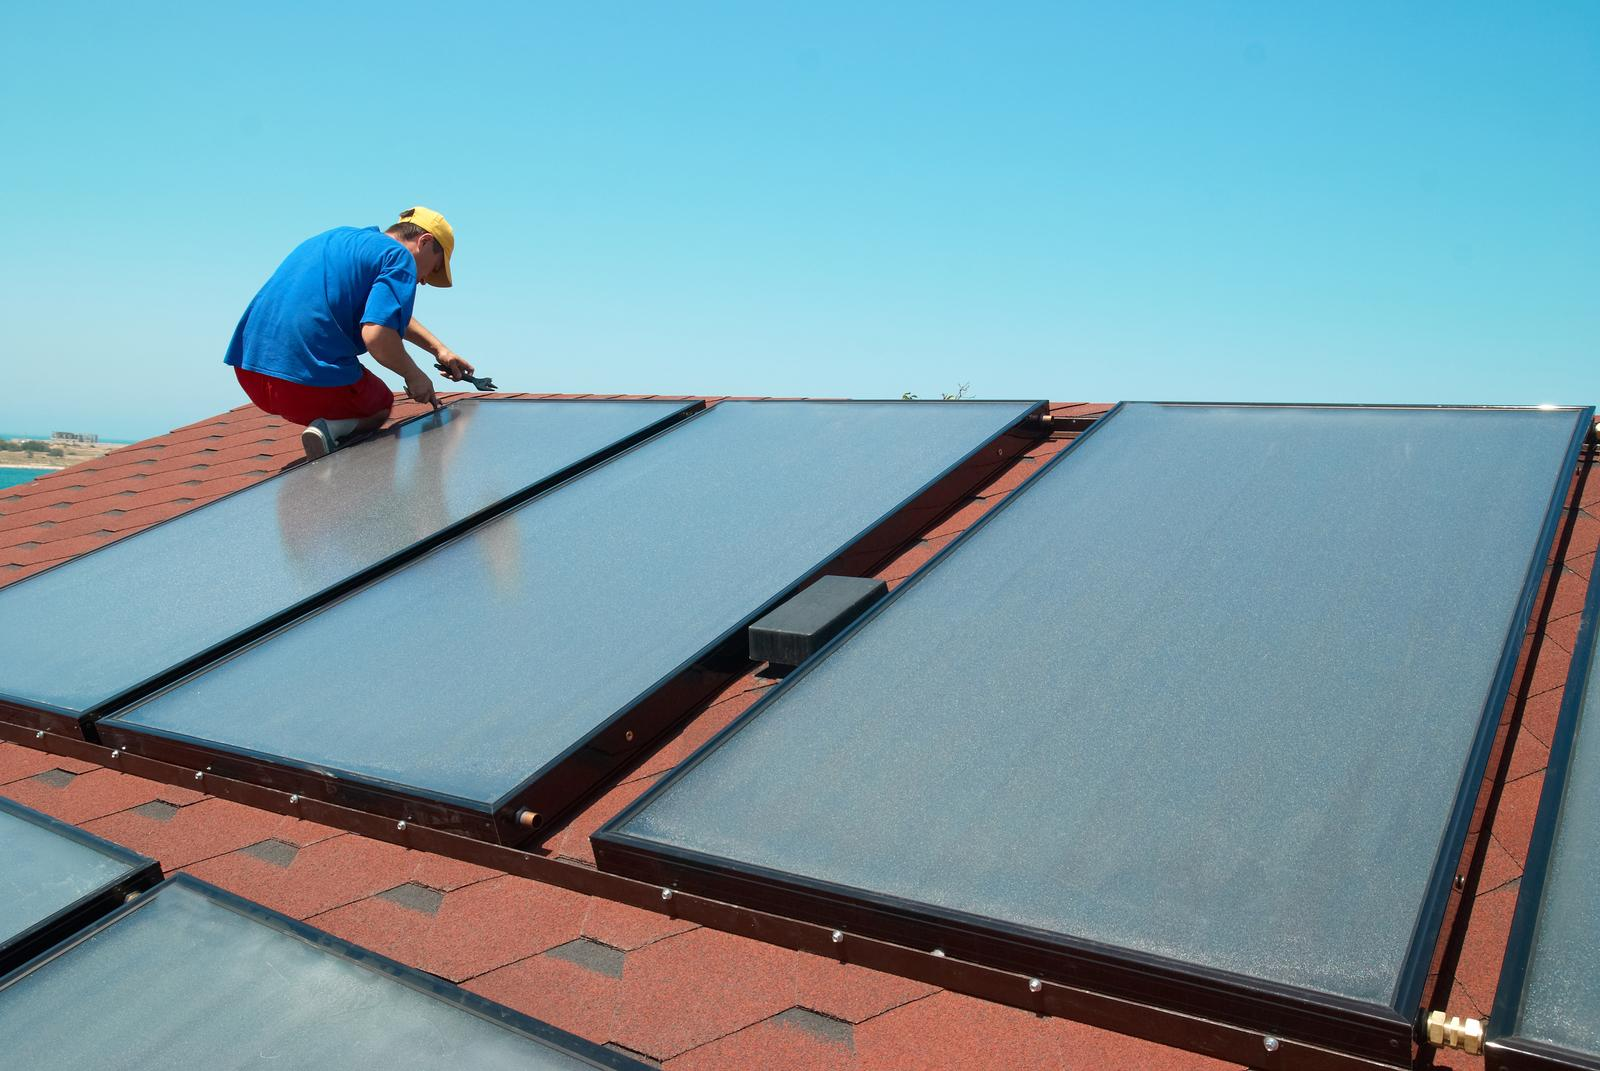 Phoenix Solar Energy by MiSolar Installs for Sustainable Residential and Commercial Power Generation 2